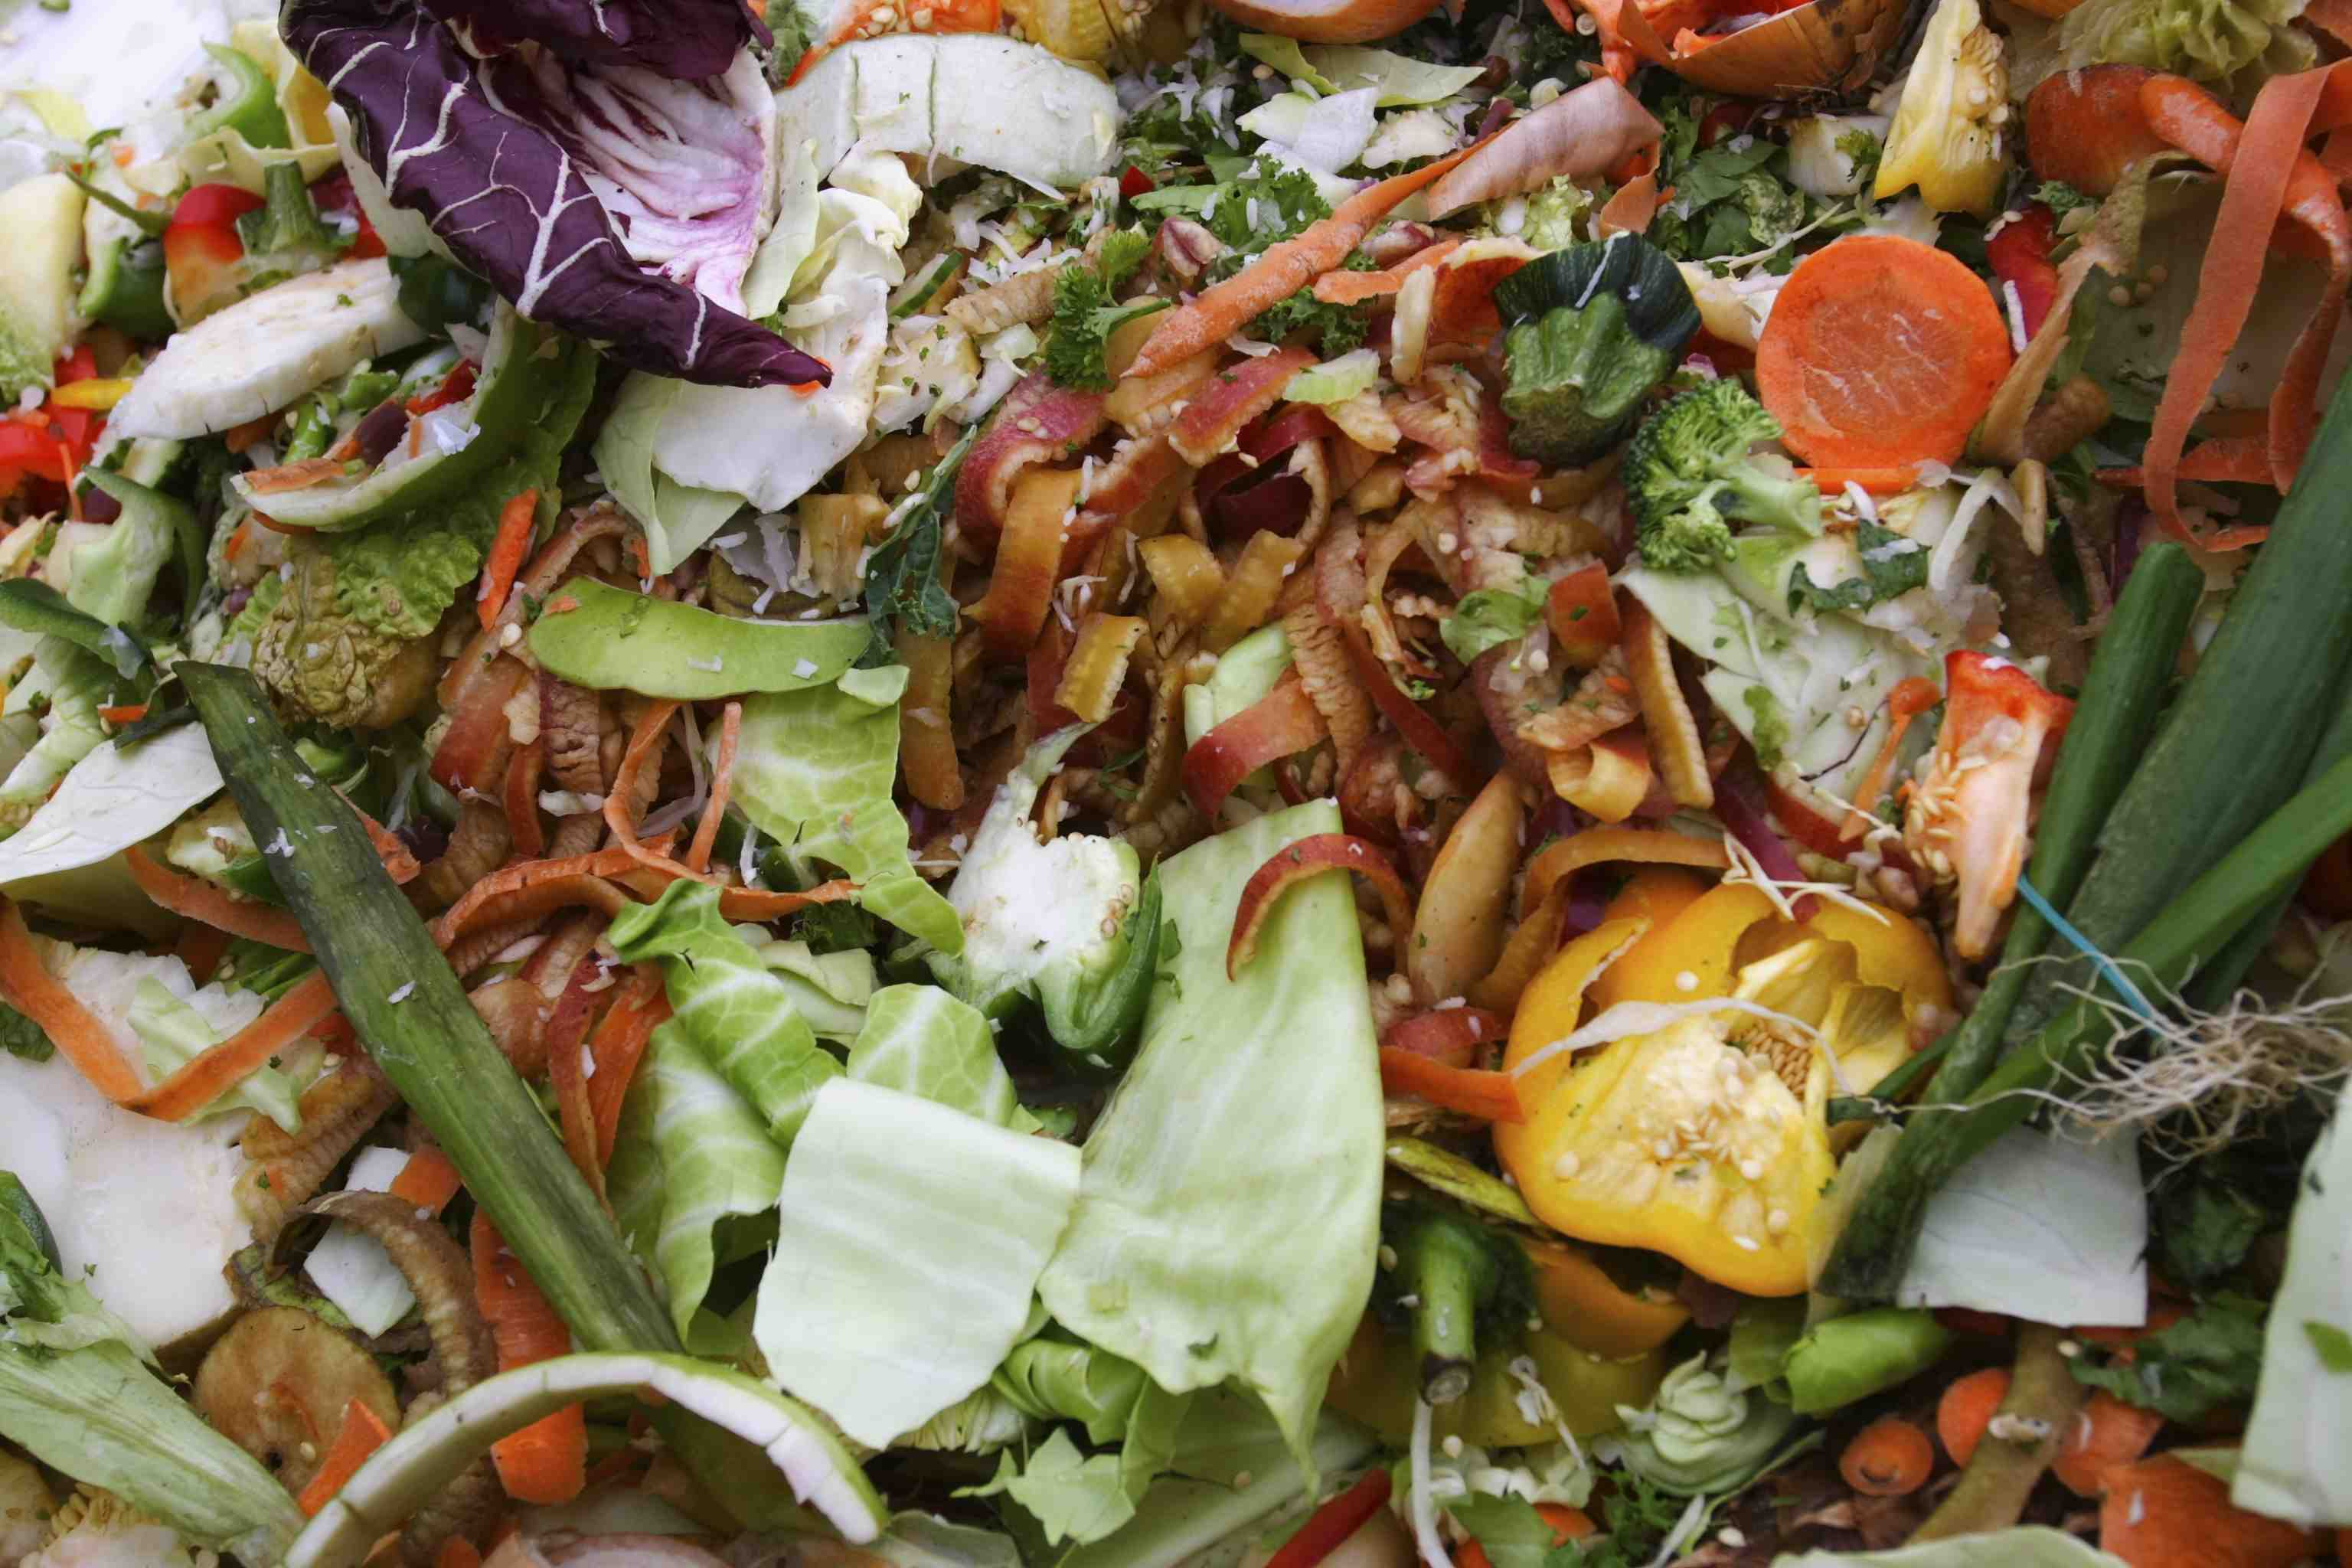 Film Screenings 'Just Eat It: A Food Waste Story'